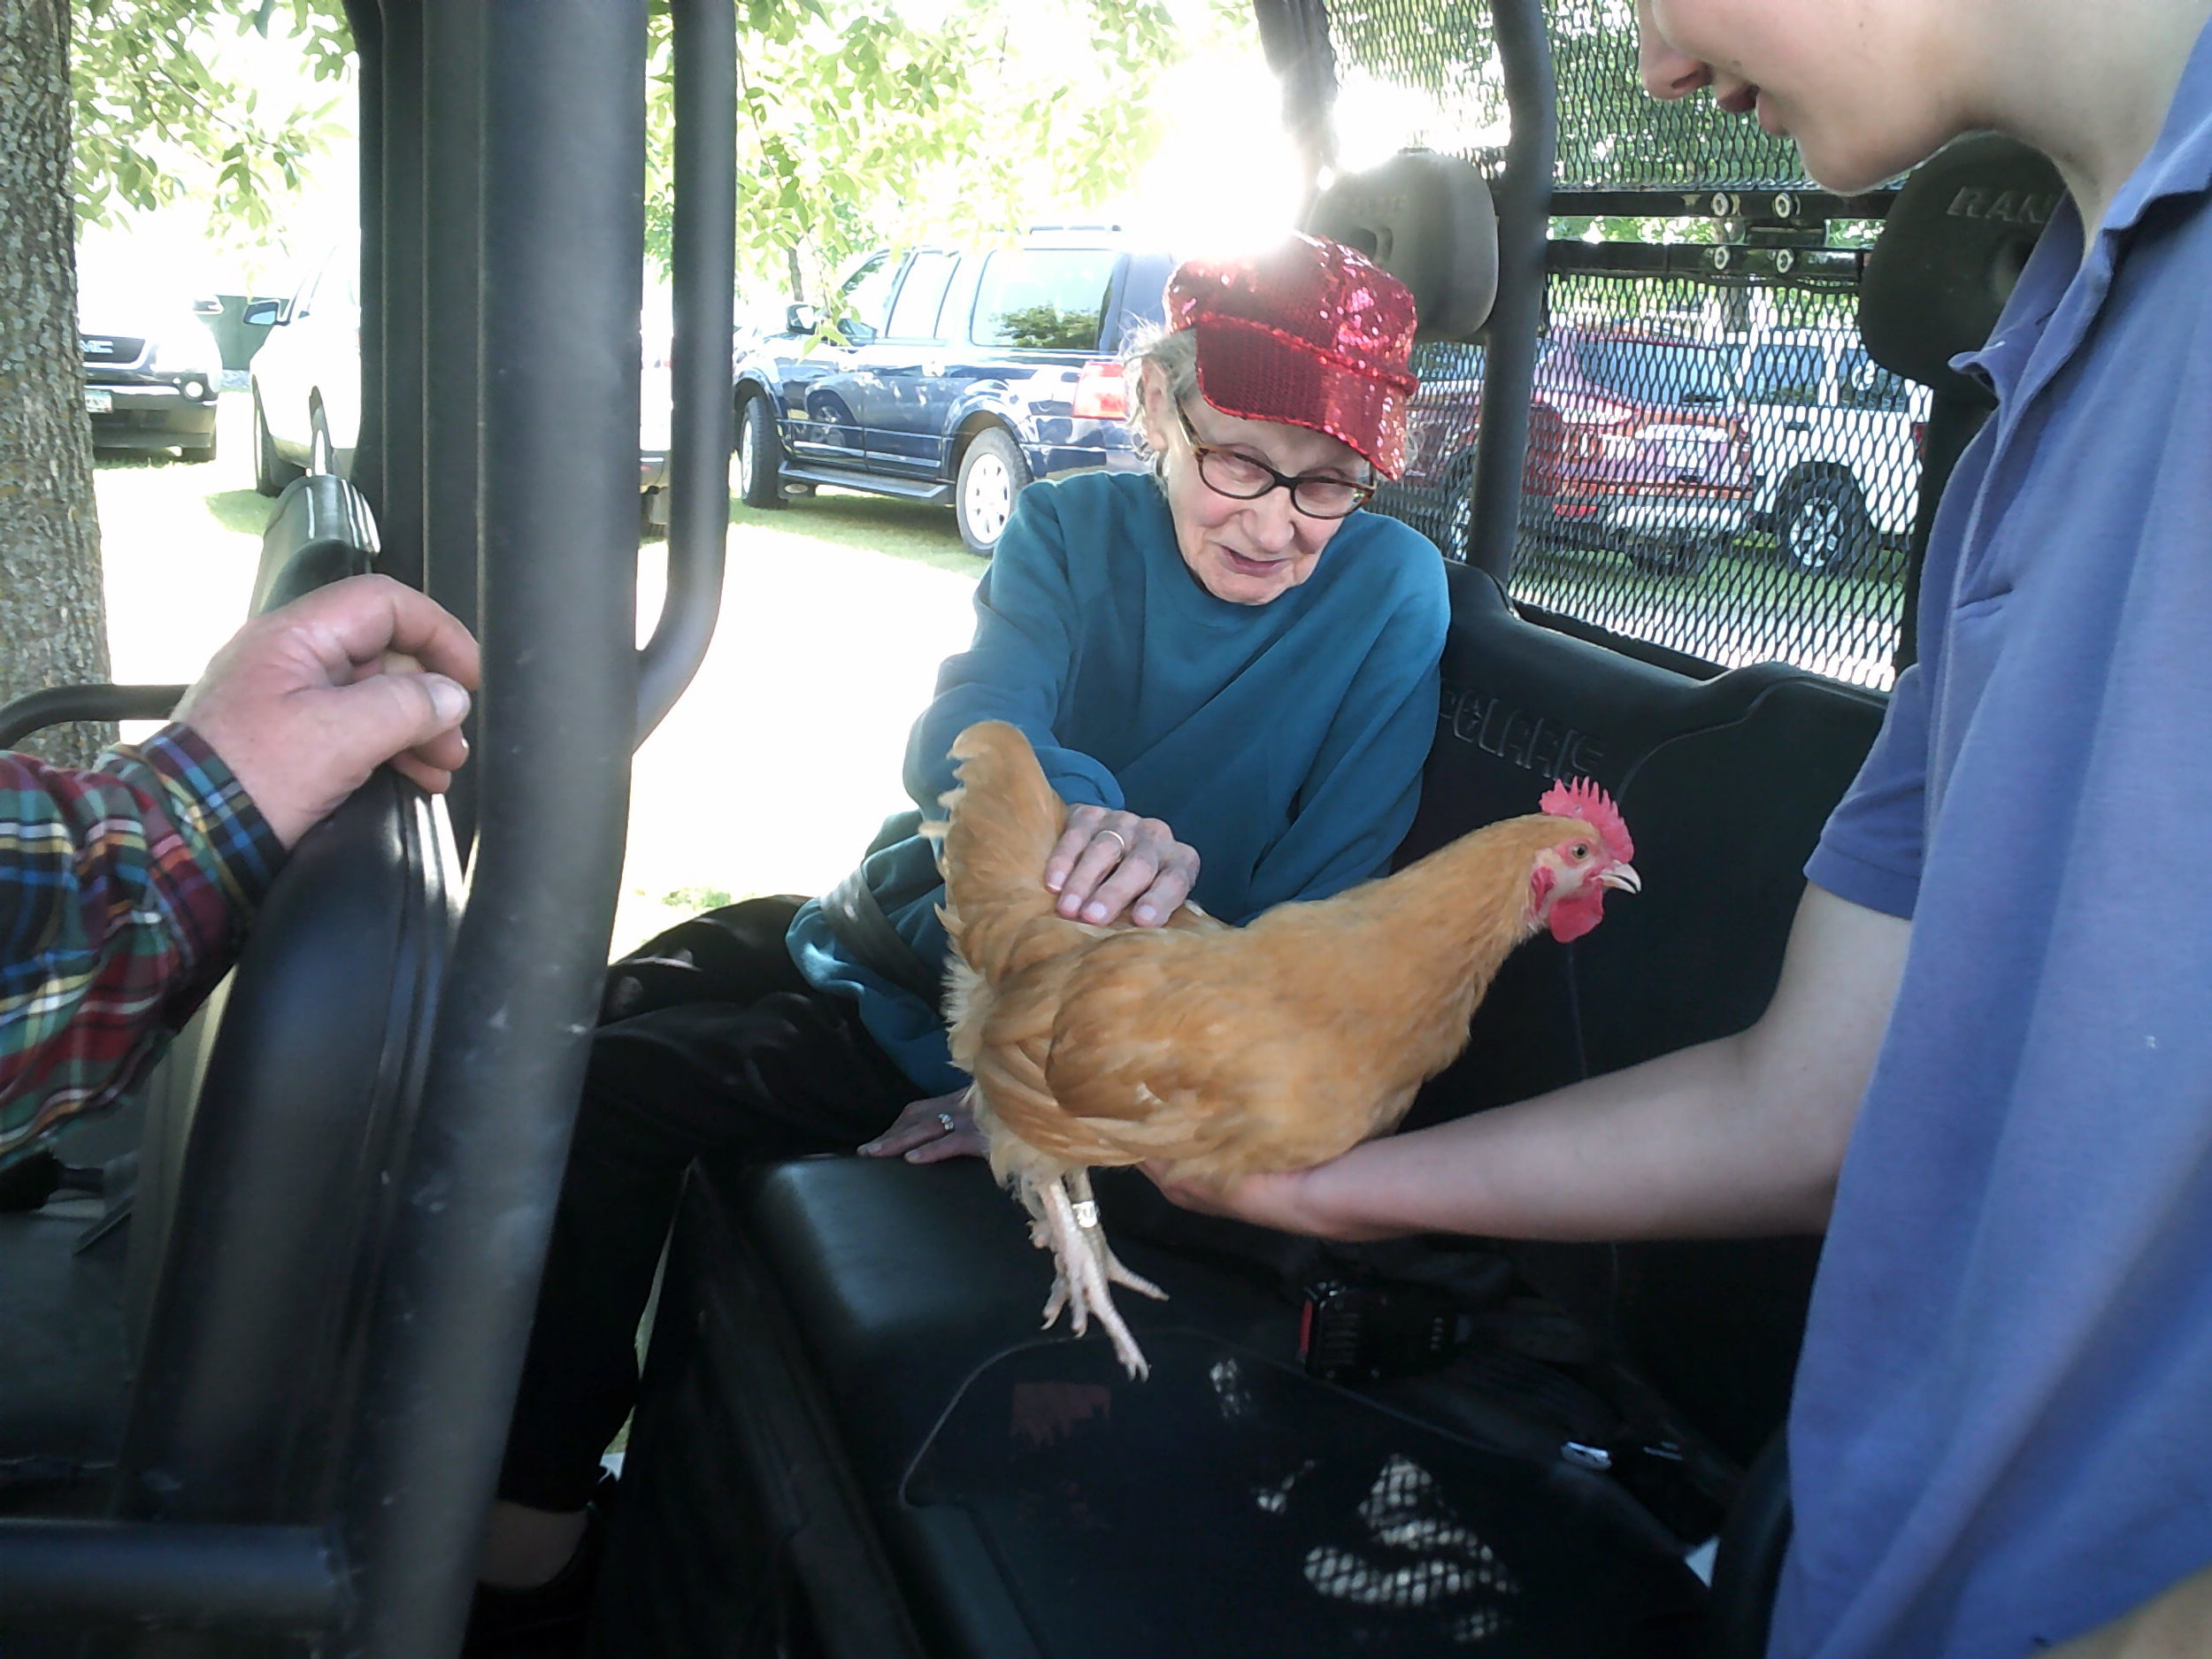 Valley Care and Rehab's residents were introduced to many of the animals and livestock on display at the fair.